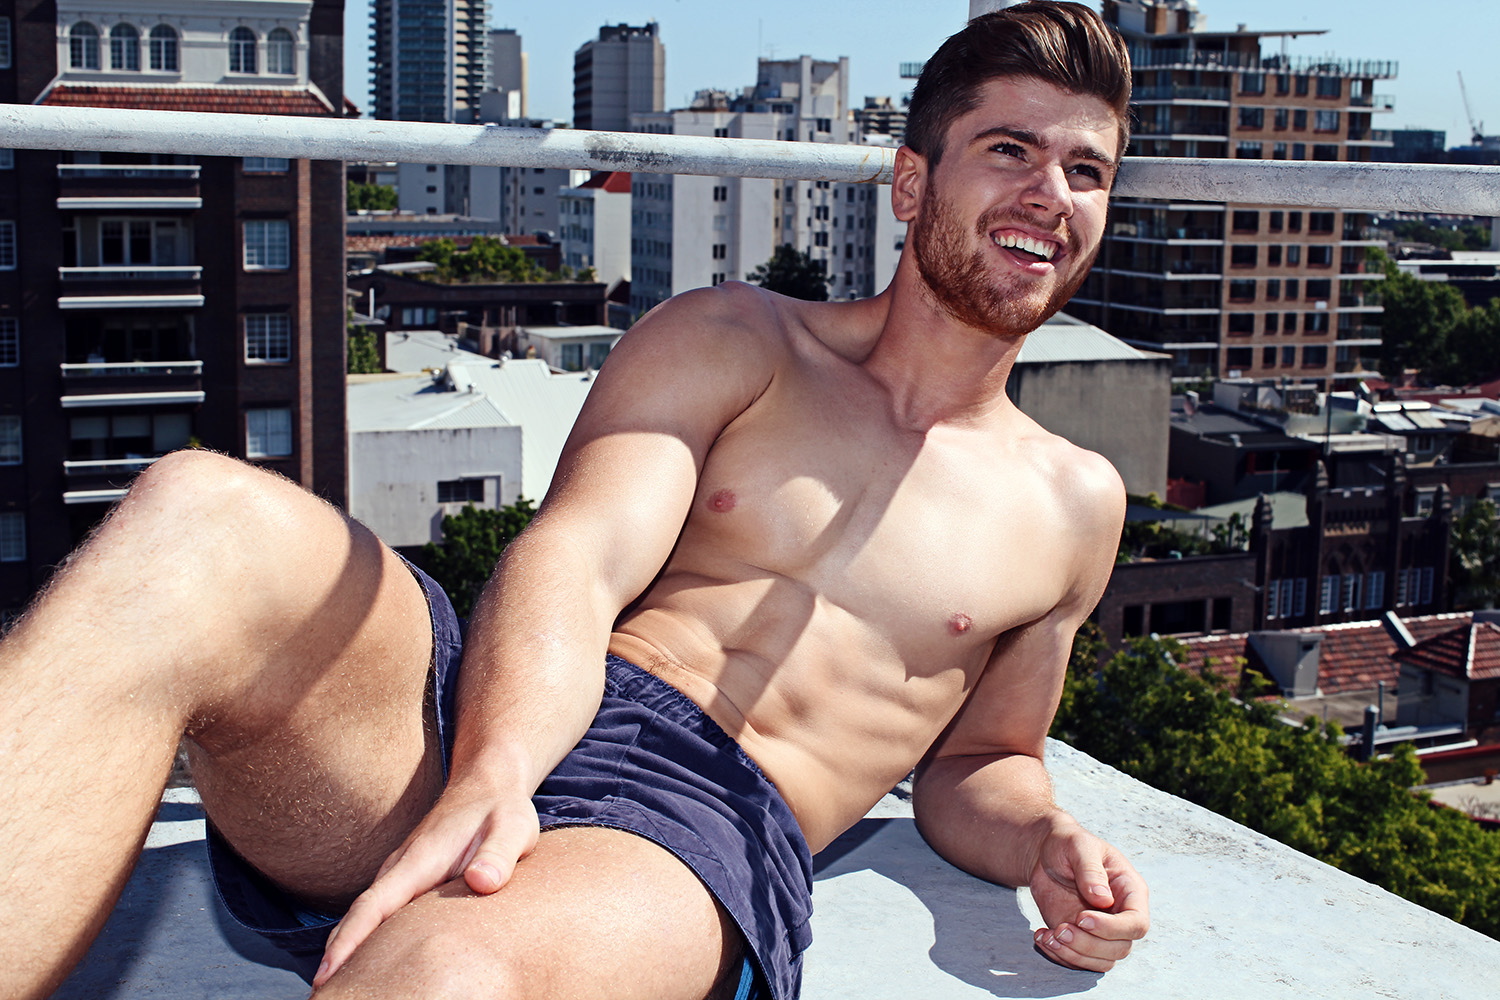 Ginger stunner Matt Jesaveluk is here gain charming our screens, shot by Karim Konrad in an exclusive for Fashionably Male. Including fresh snaps with natural sun light, the beauty Aussie model posing shirtless with shorts and convers.